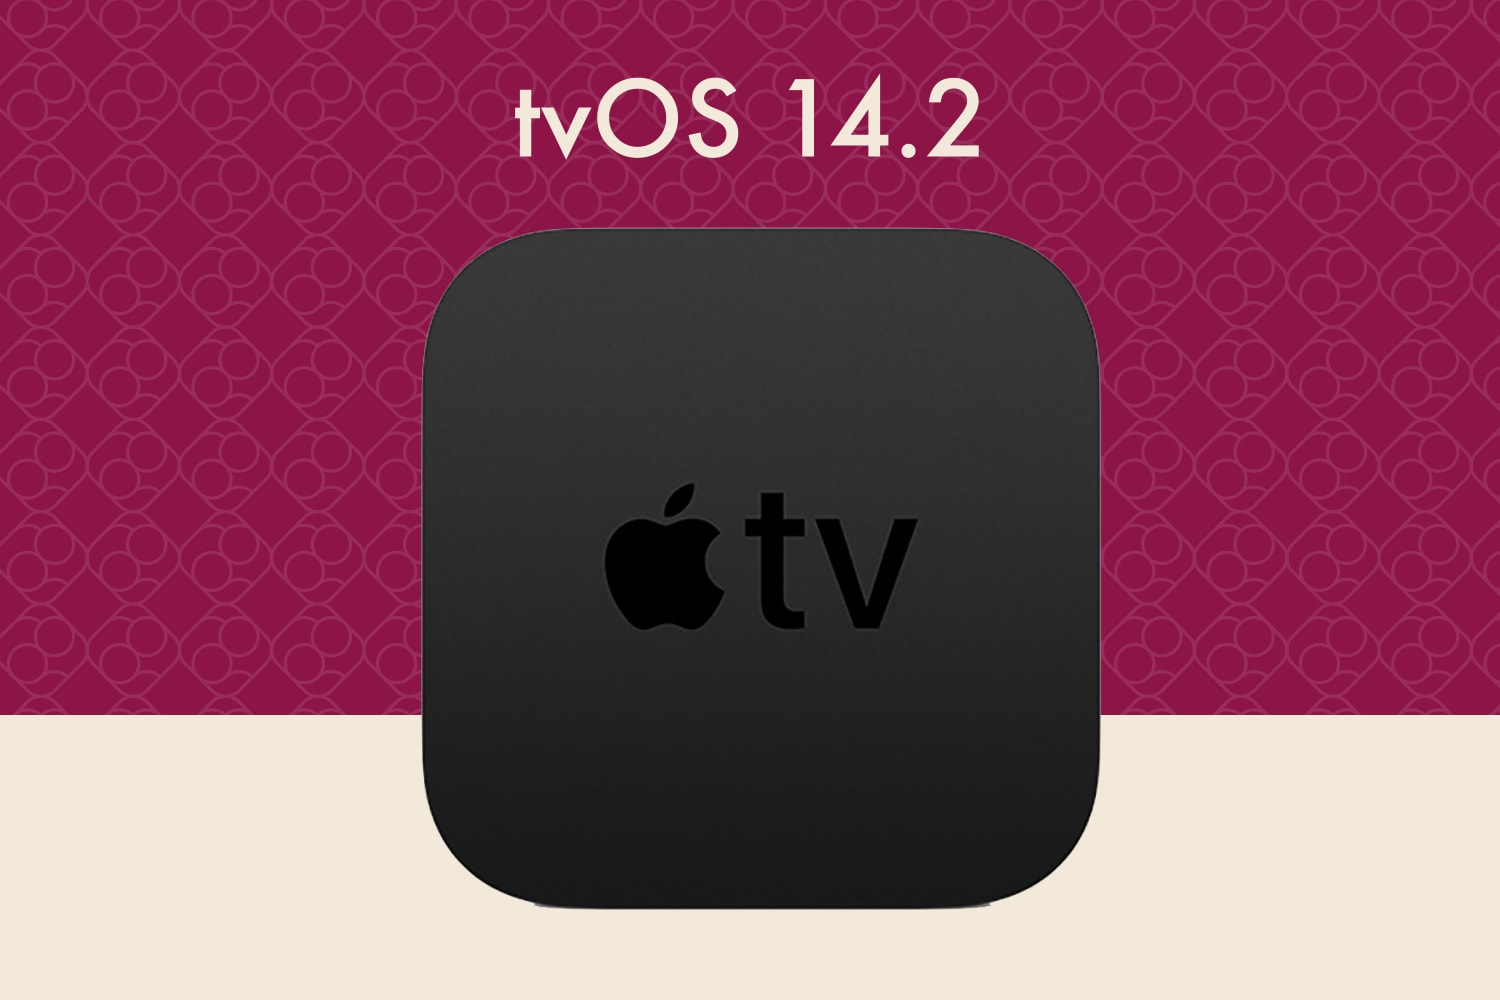 apple-releases-tvos-14-2-update-first-beta-to-developers-20200924-1